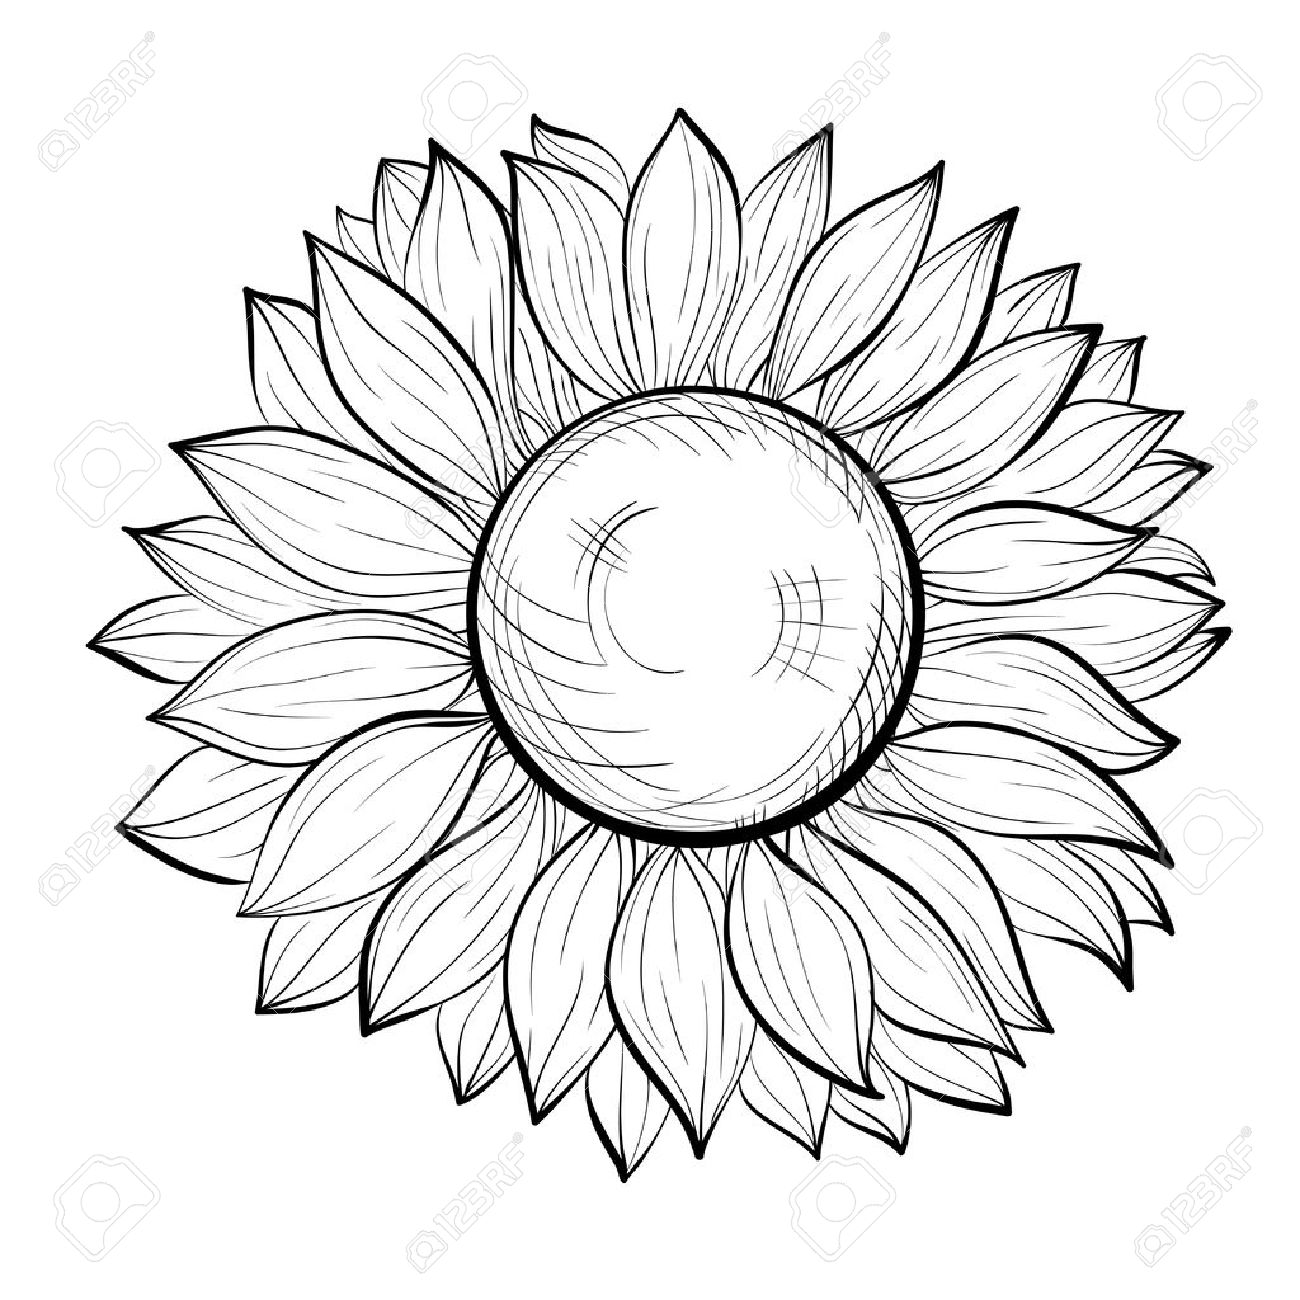 1300x1300 Beautiful Black And White Sunflower Isolated On White Background